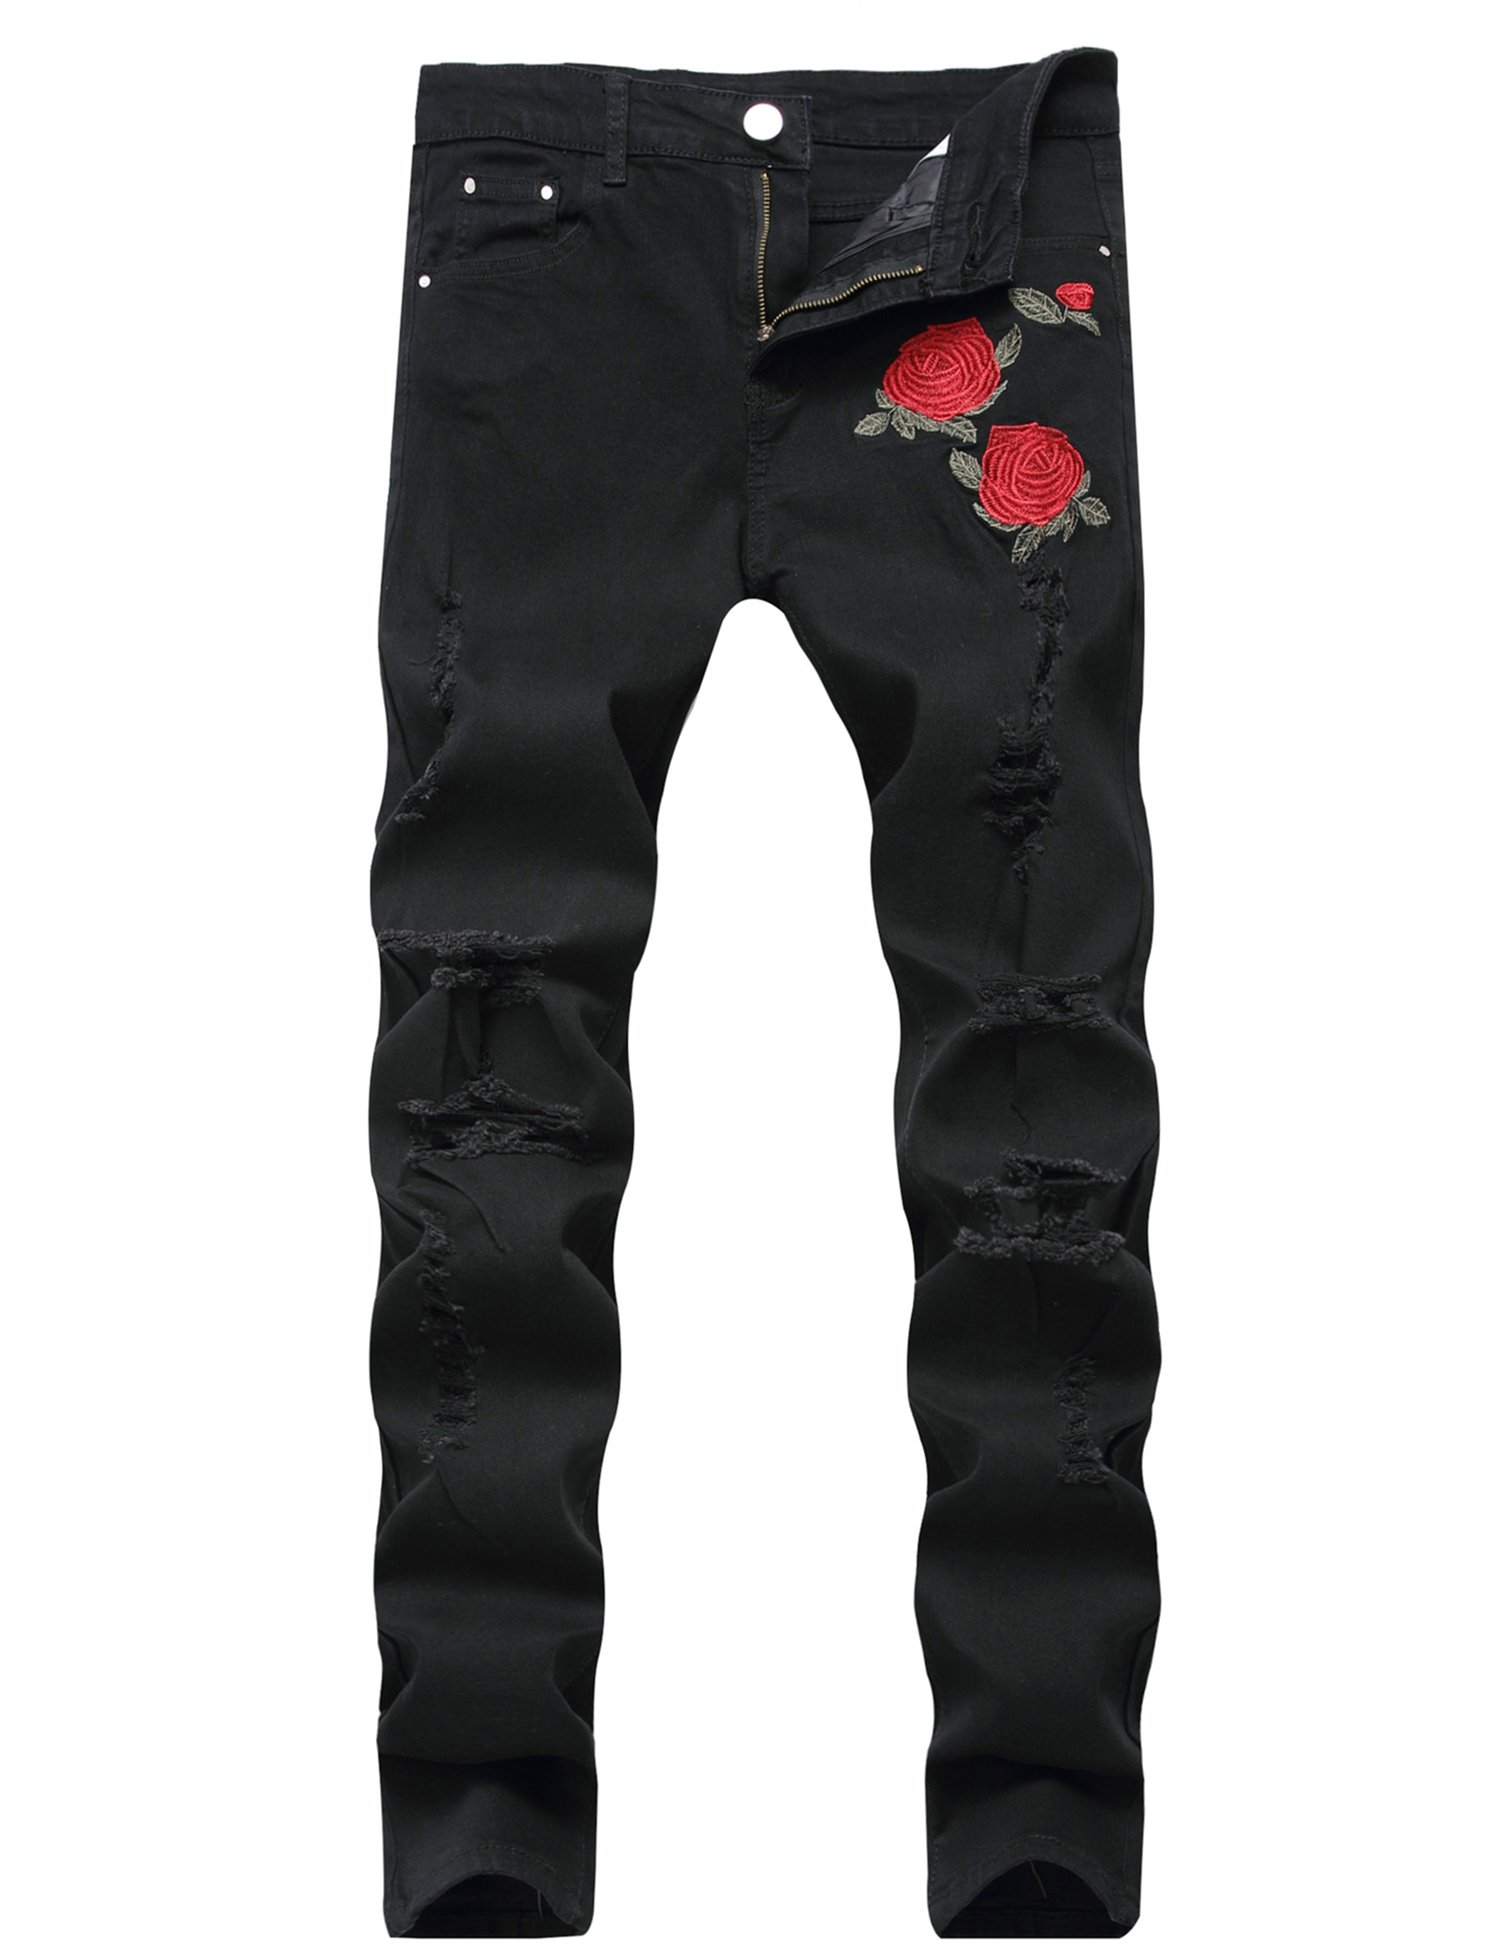 GARMOY Men's Fashion Light Blue Ripped Destroyed Flower Embroidered Skinny Fit Jeans Black 28